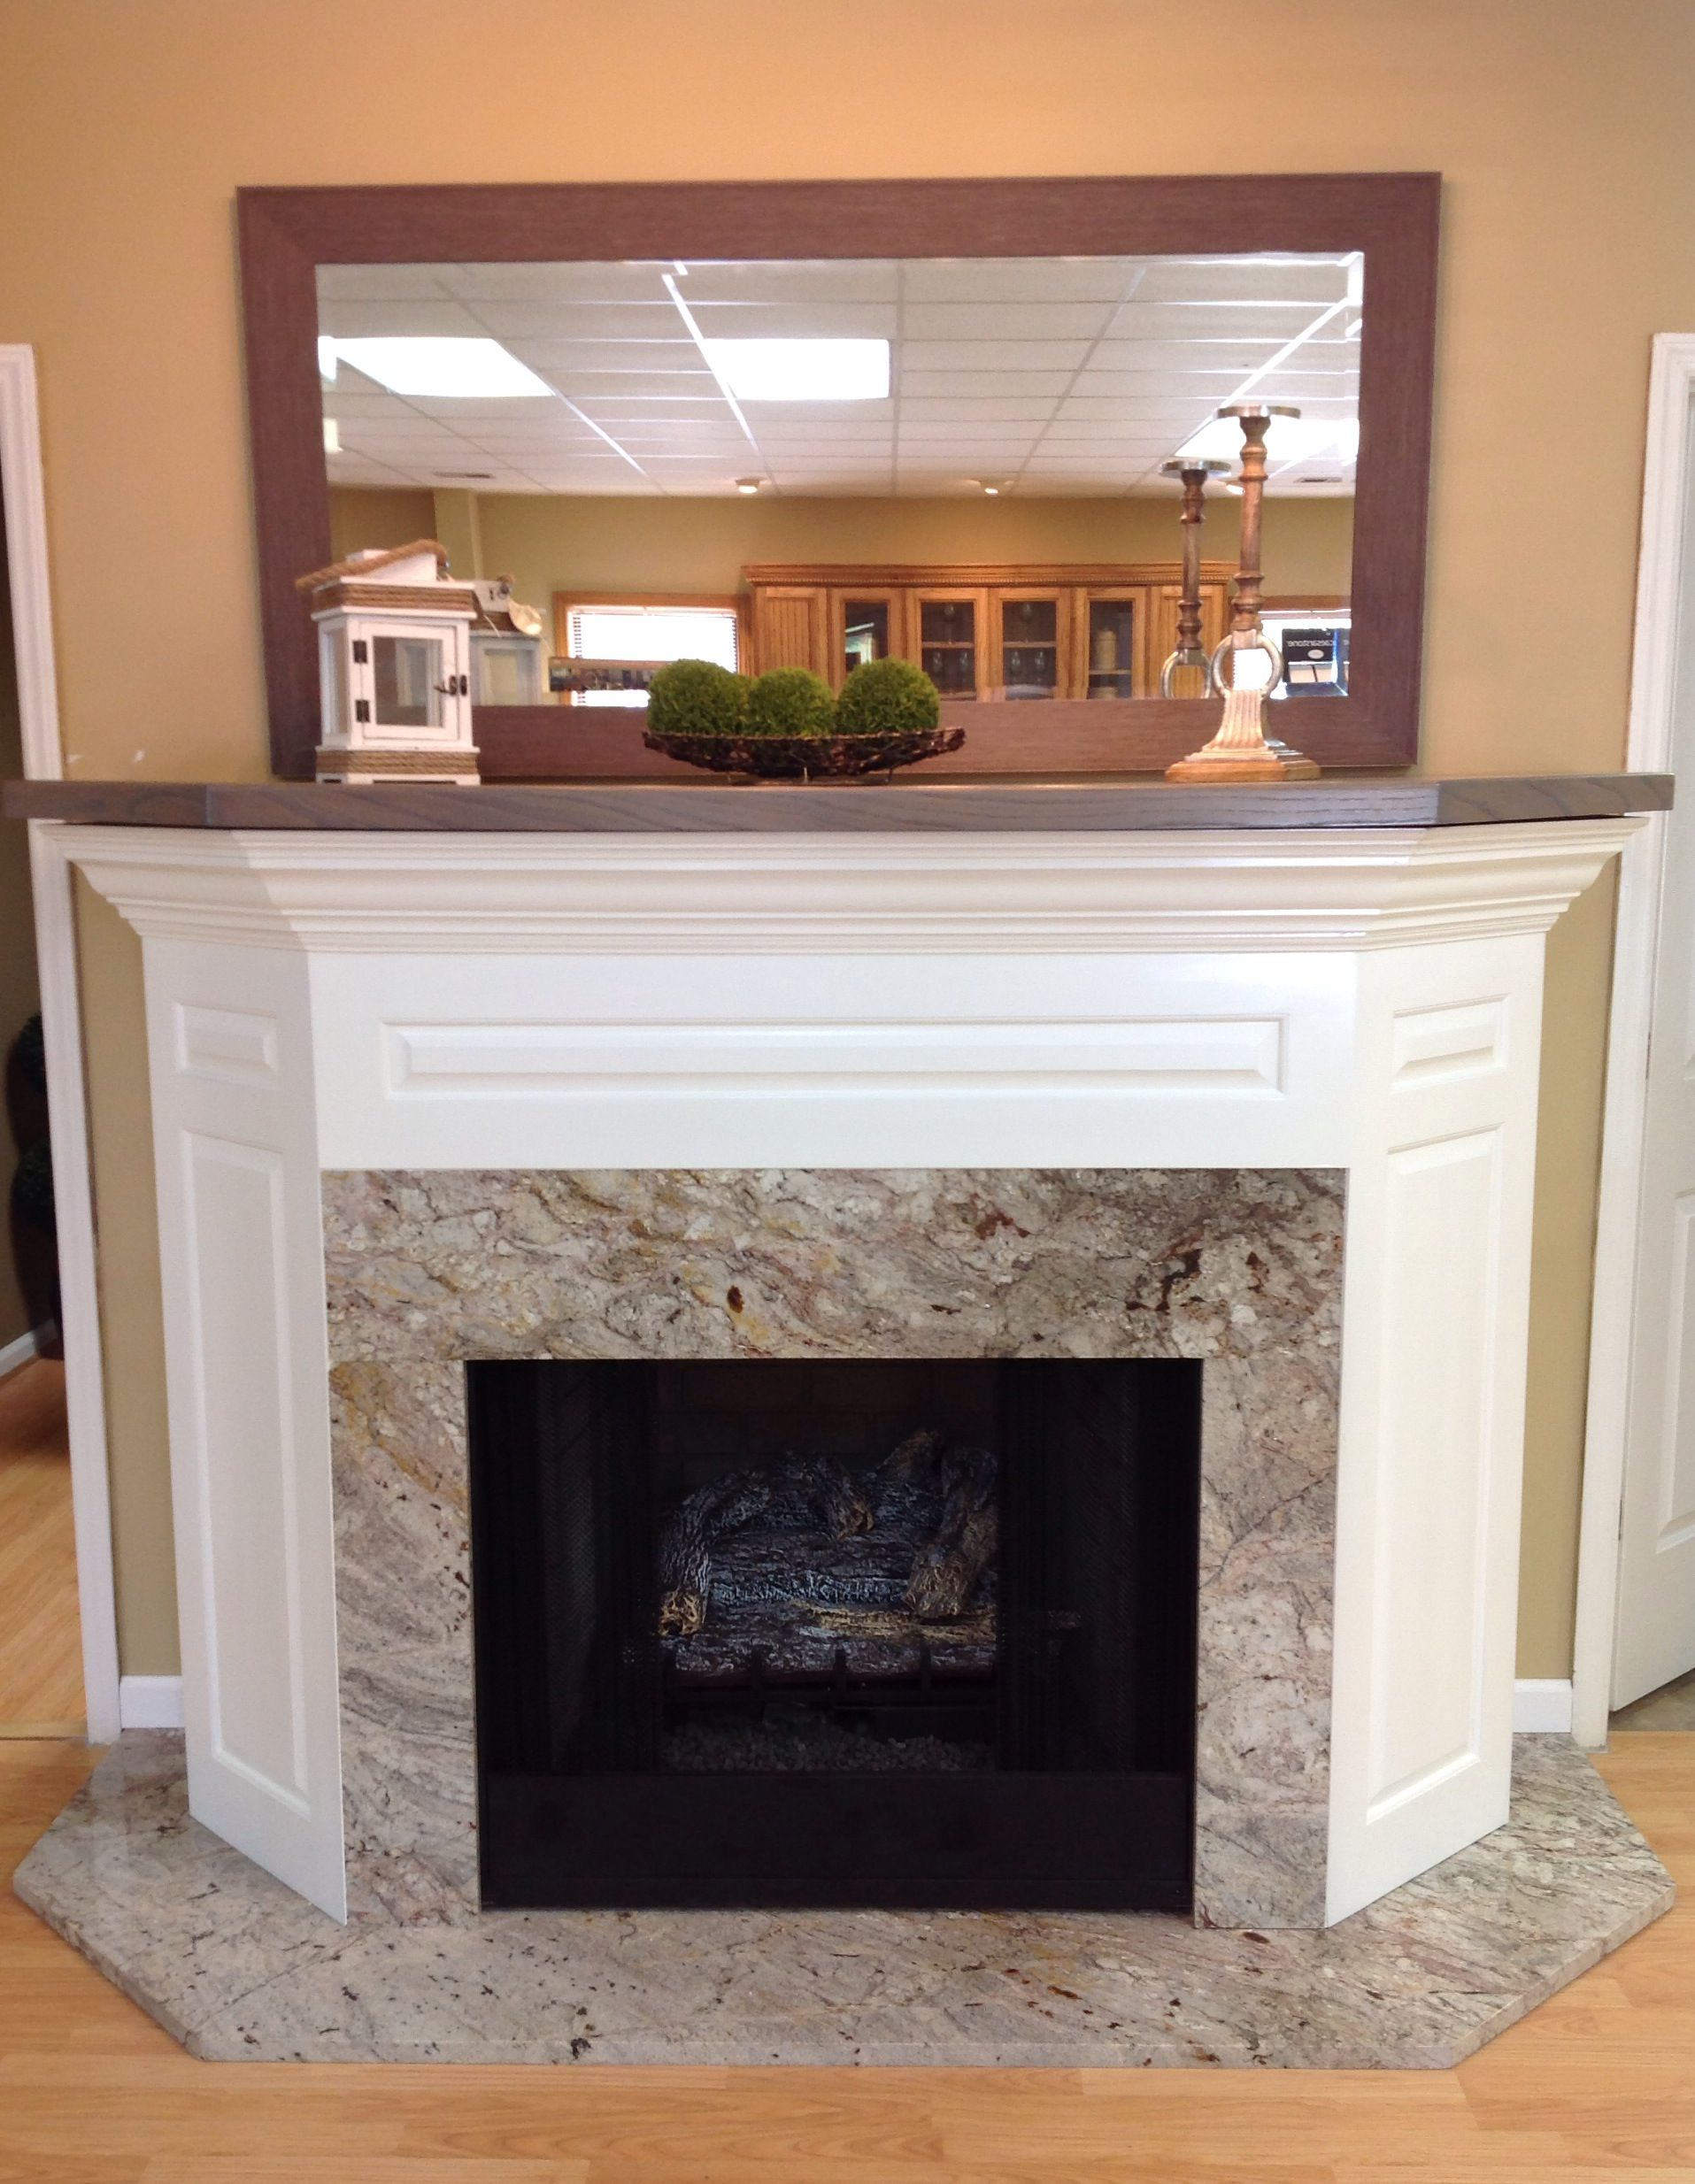 bordeaux dream granite fireplace surround and hearth house ideas rh pinterest com